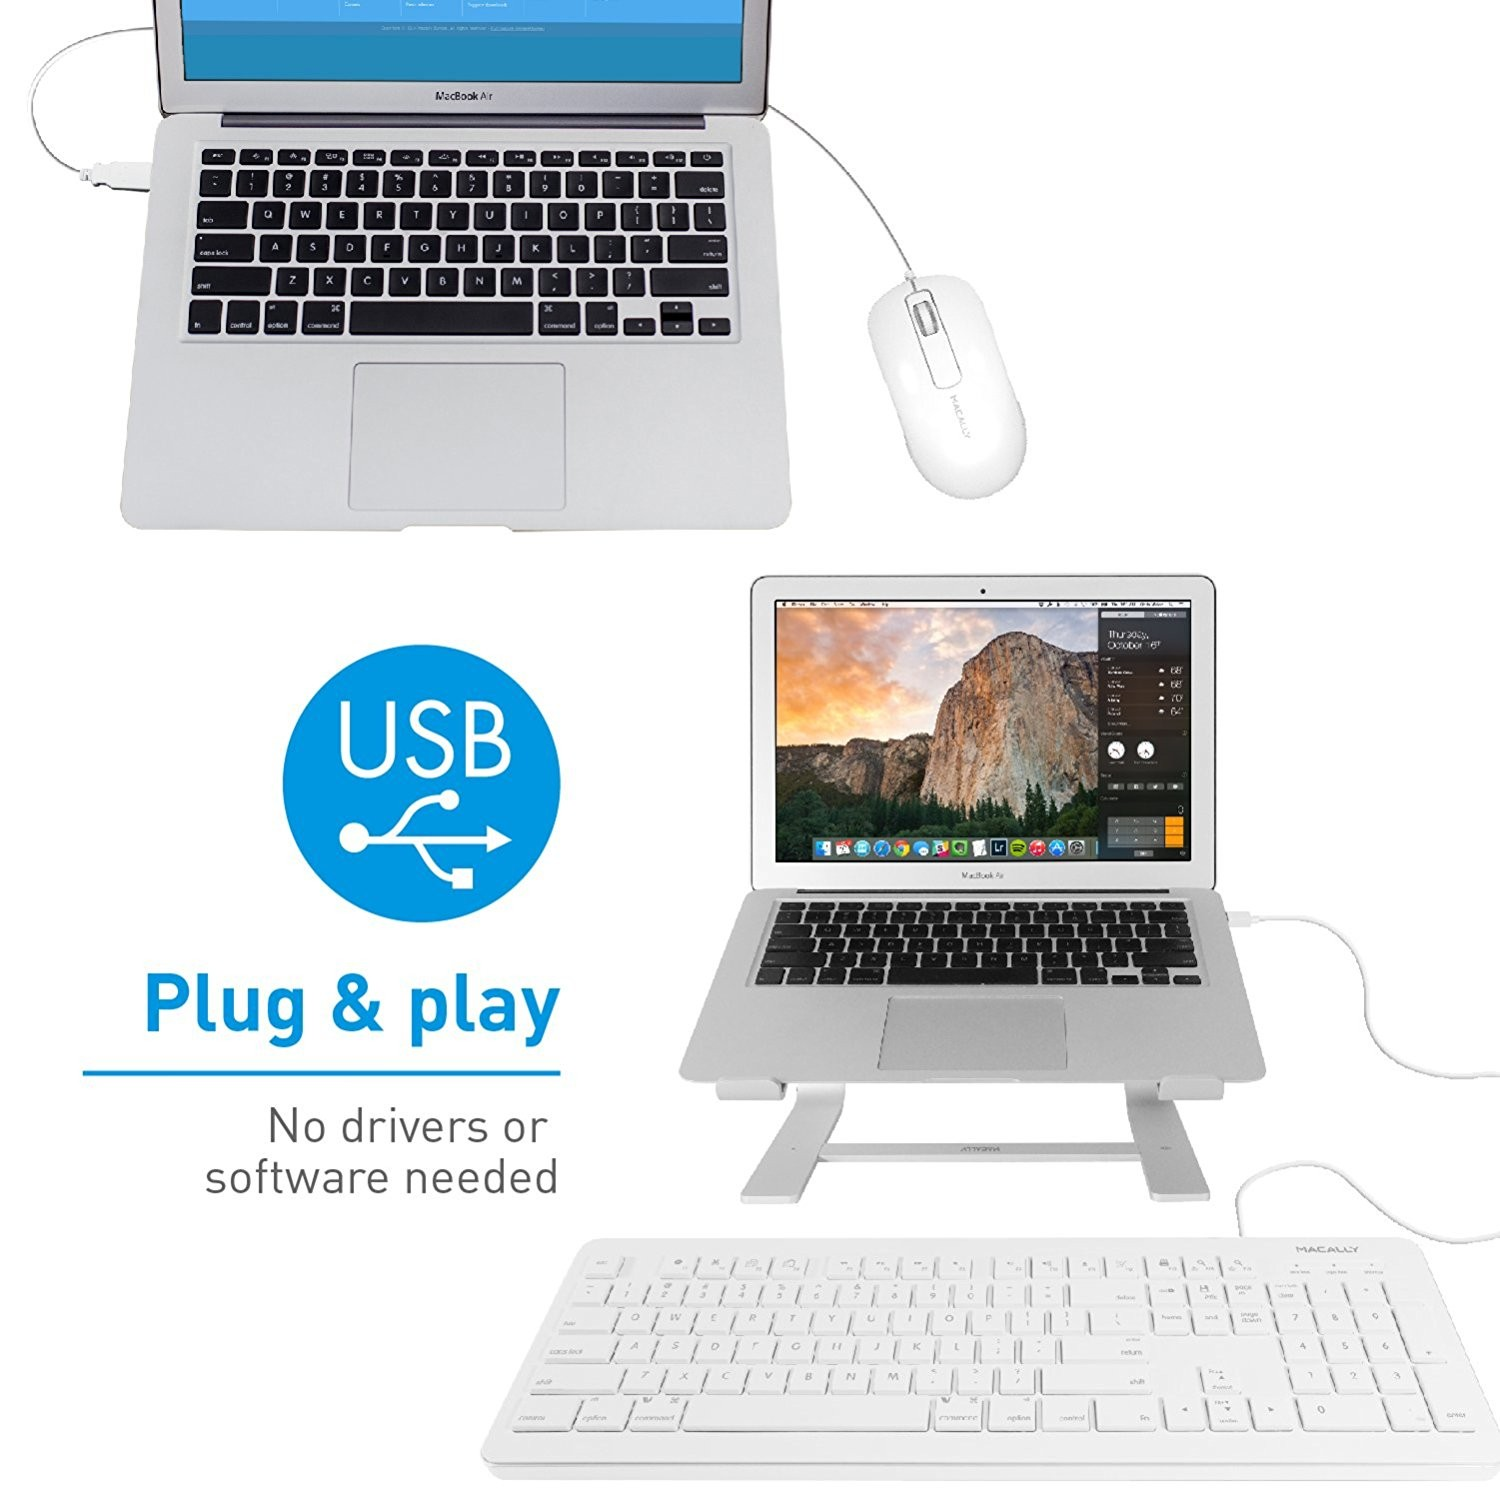 Macally 104 Key USB Wired Keyboard with 2 USB Port Hub and Mouse Combo for Mac or PC - White, MKEYXU2COMBO